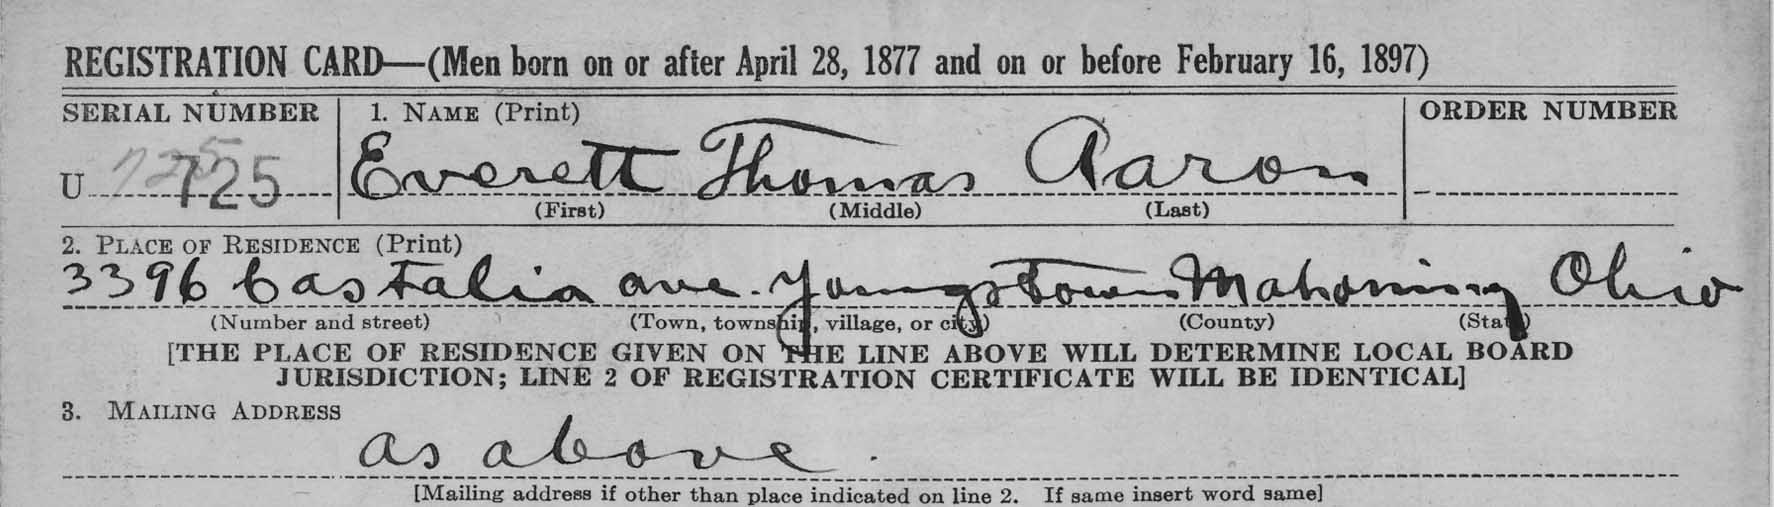 Records of the Selective Service System